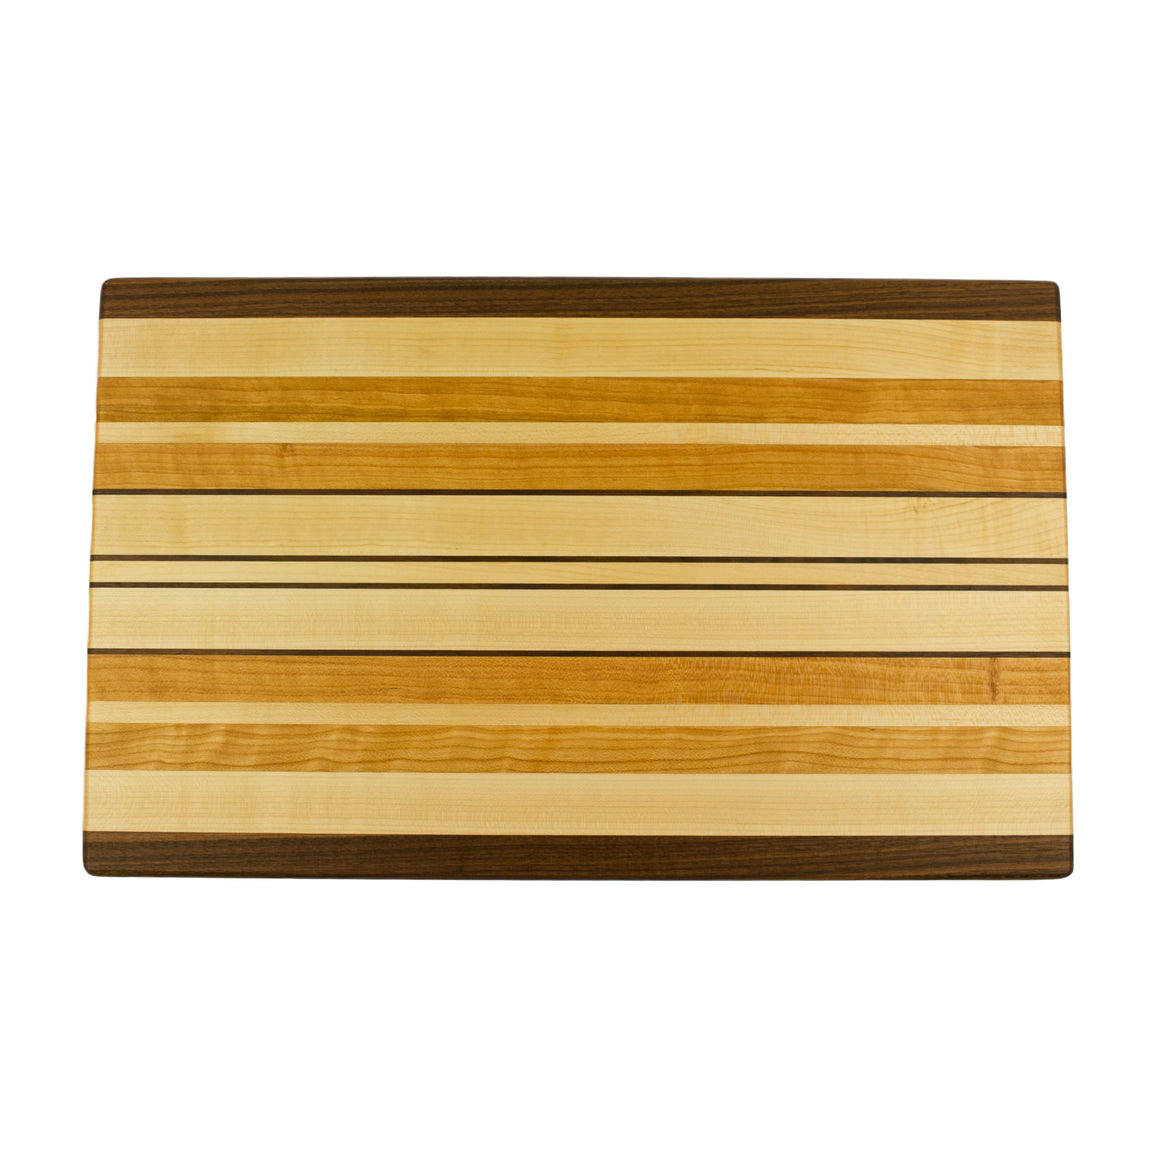 Mixed Hardwoods - Chopping Block